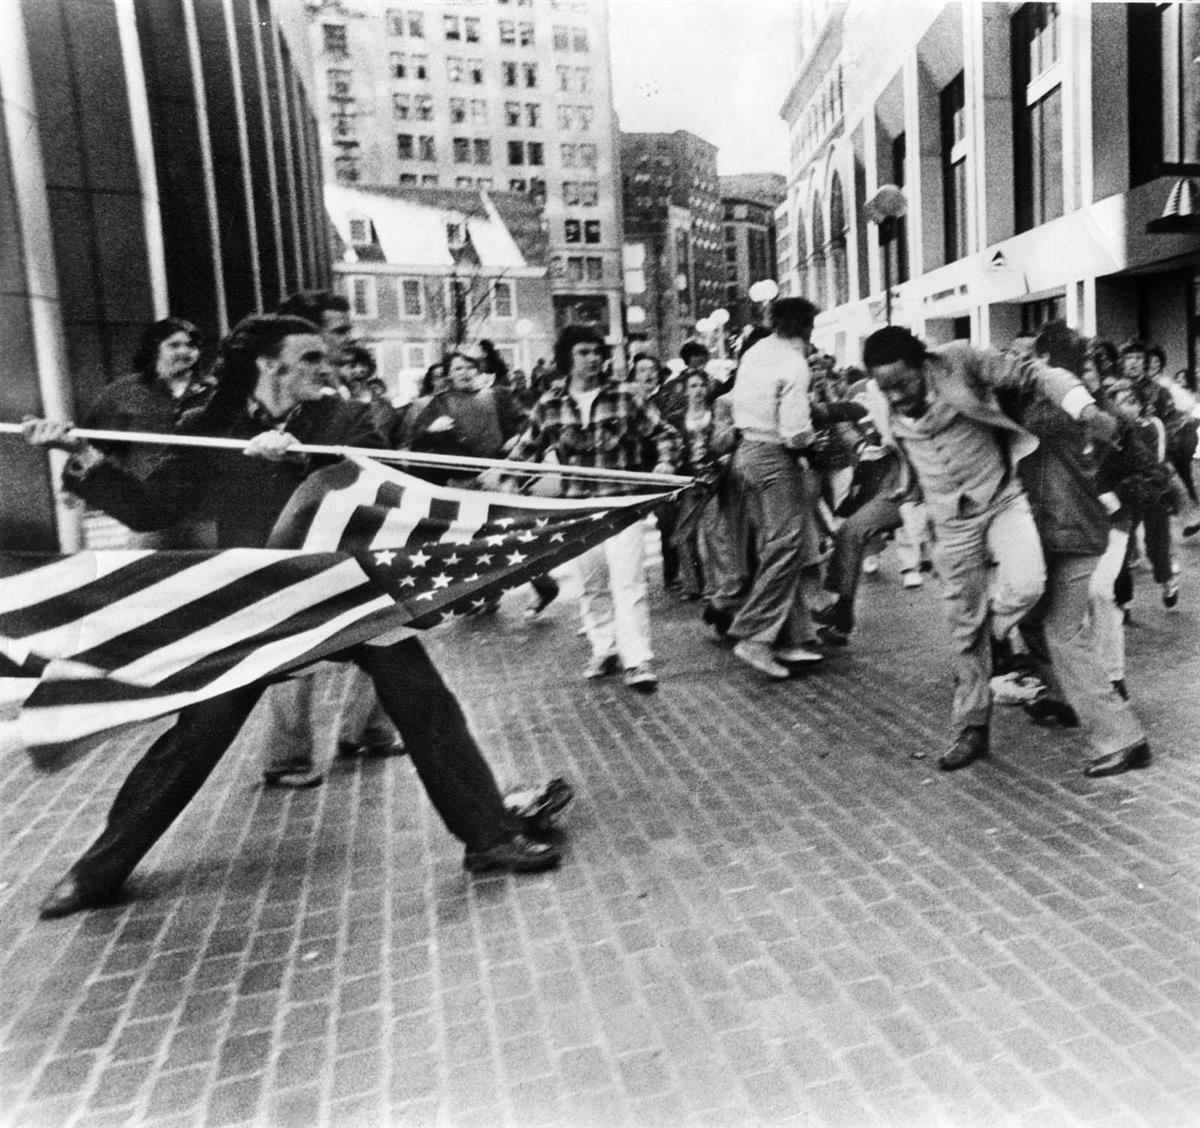 'The Soiling of Old Glory' April 5th, 1976 Boston